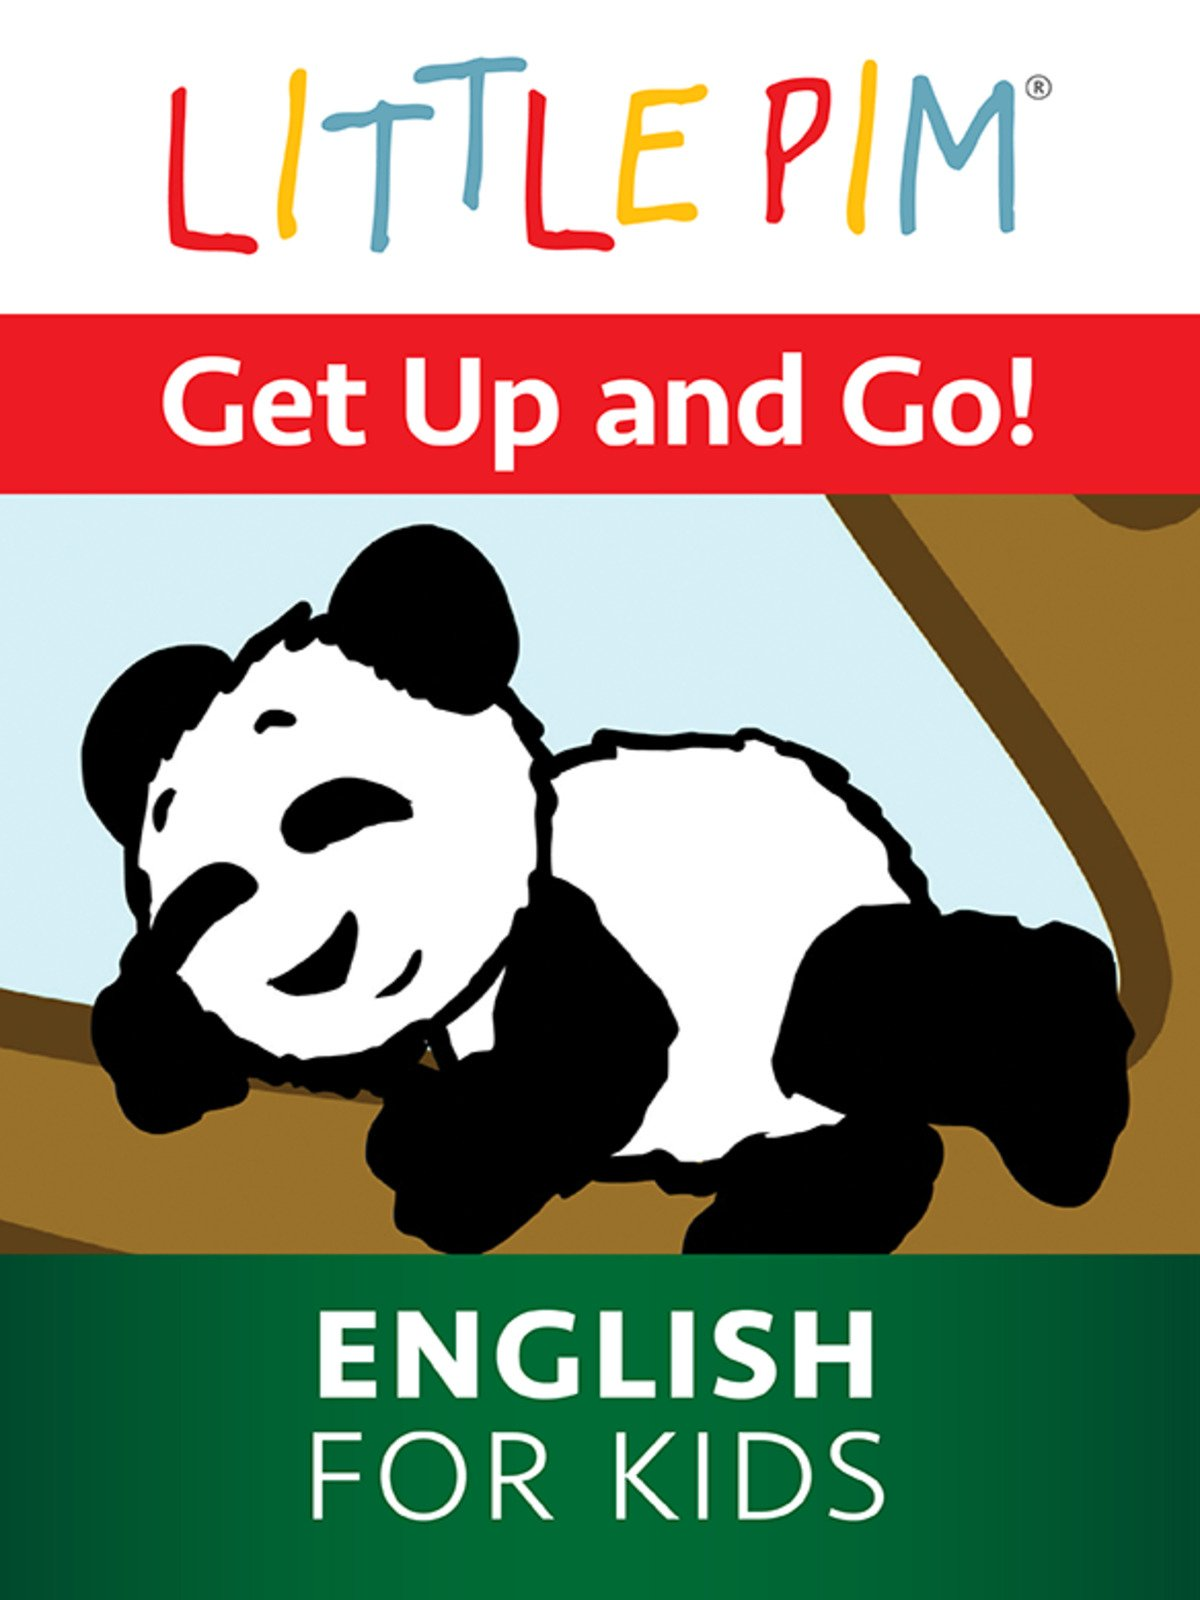 Little Pim: Get Up and Go - English for Kids on Amazon Prime Instant Video UK